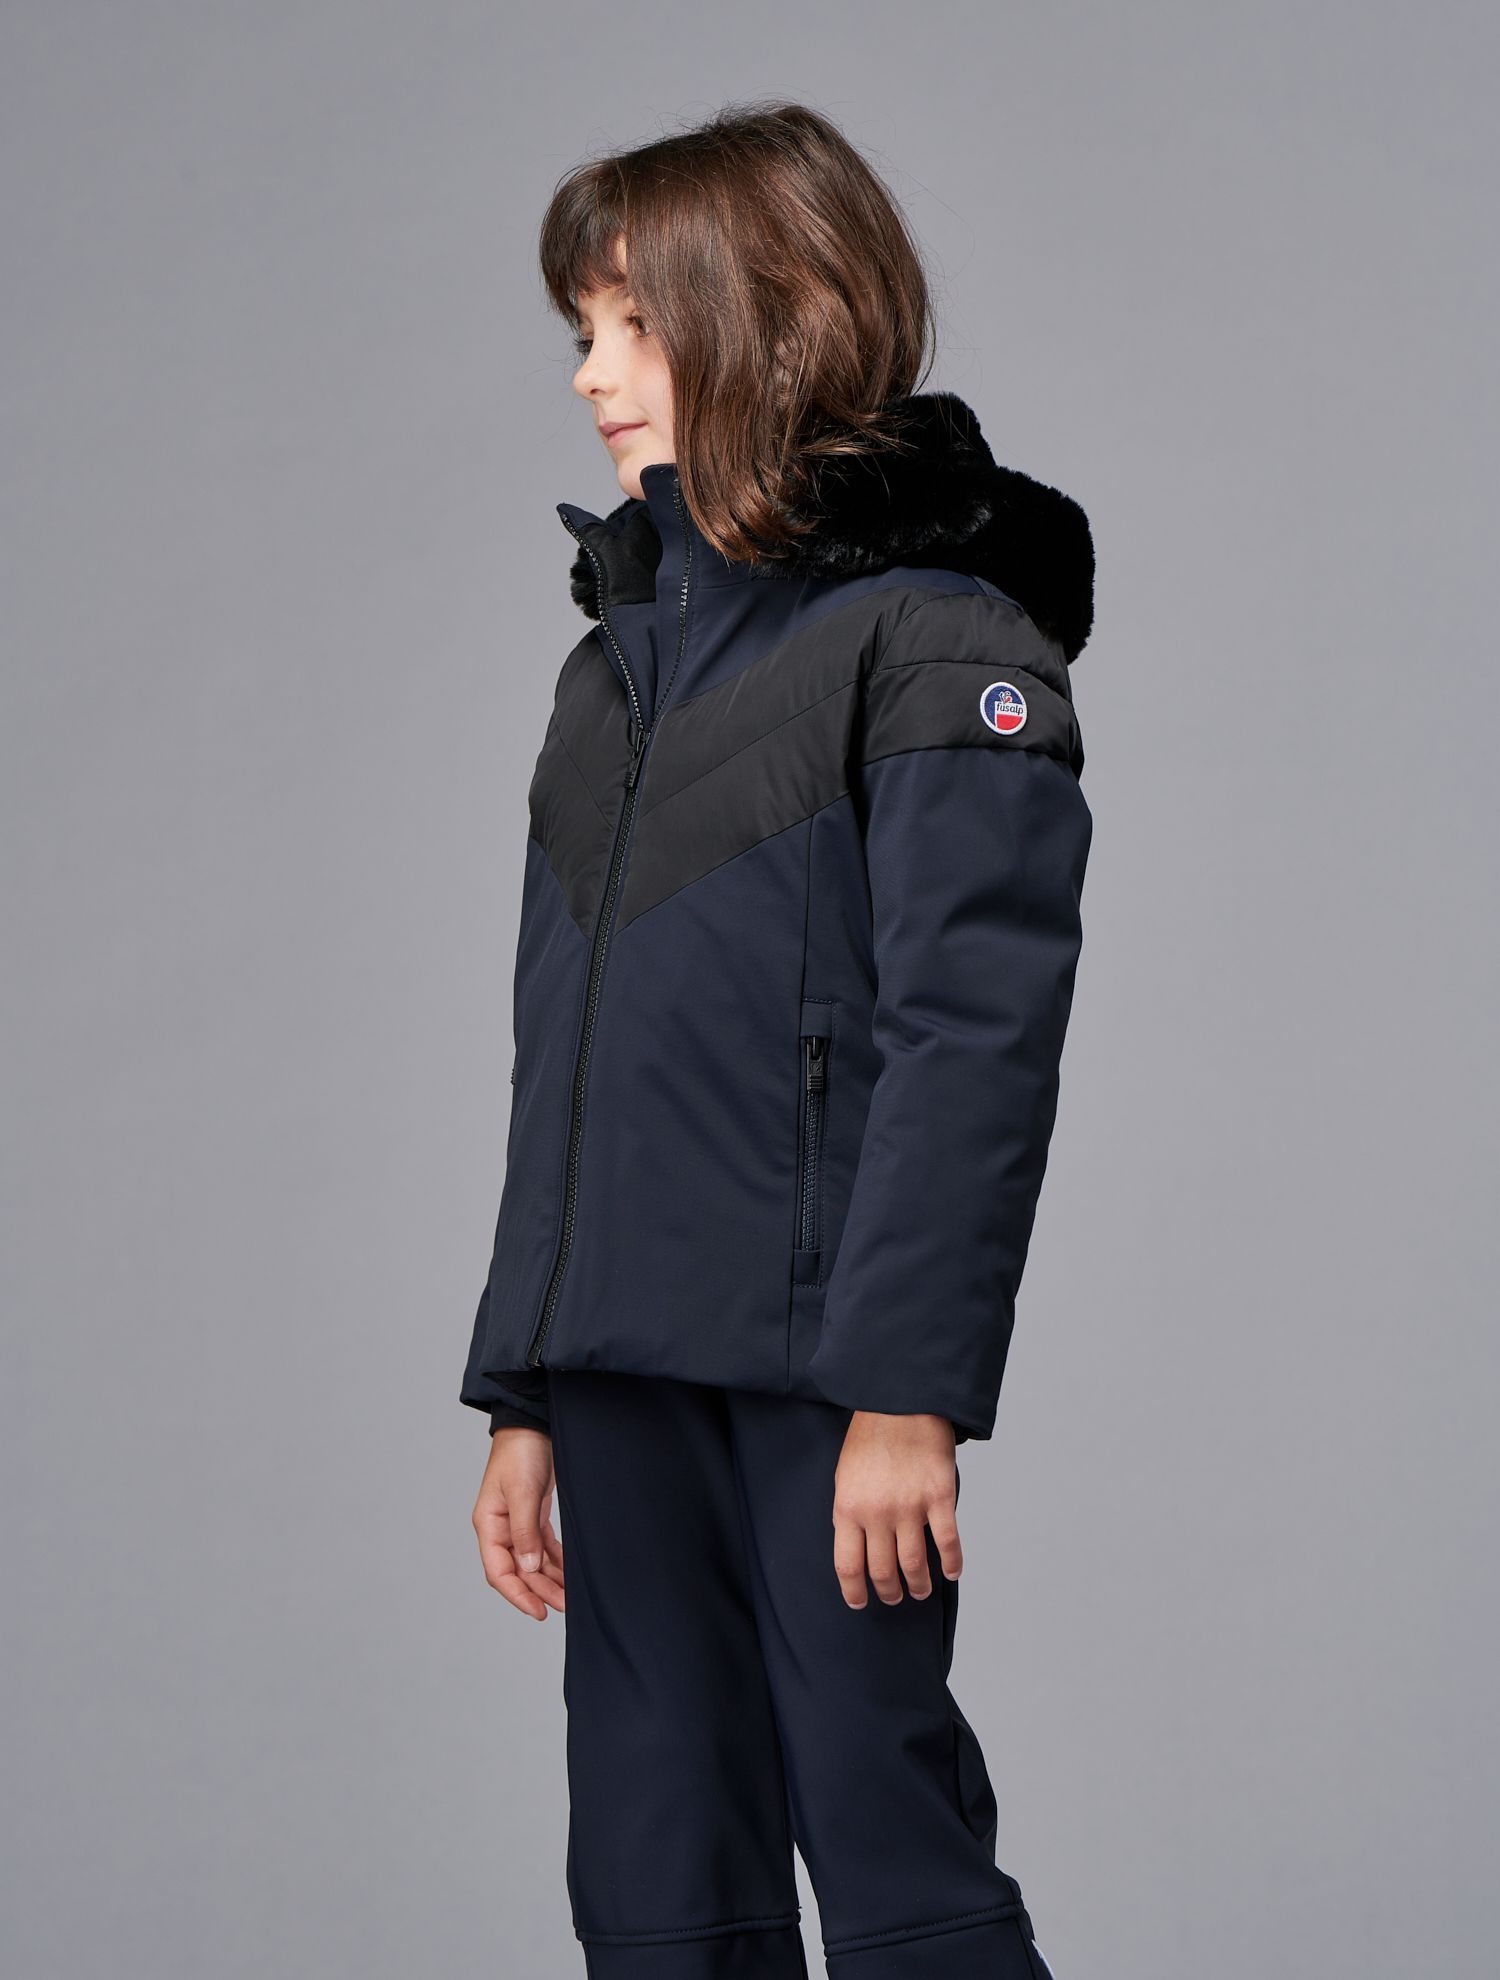 ANNE JR SKI JACKET